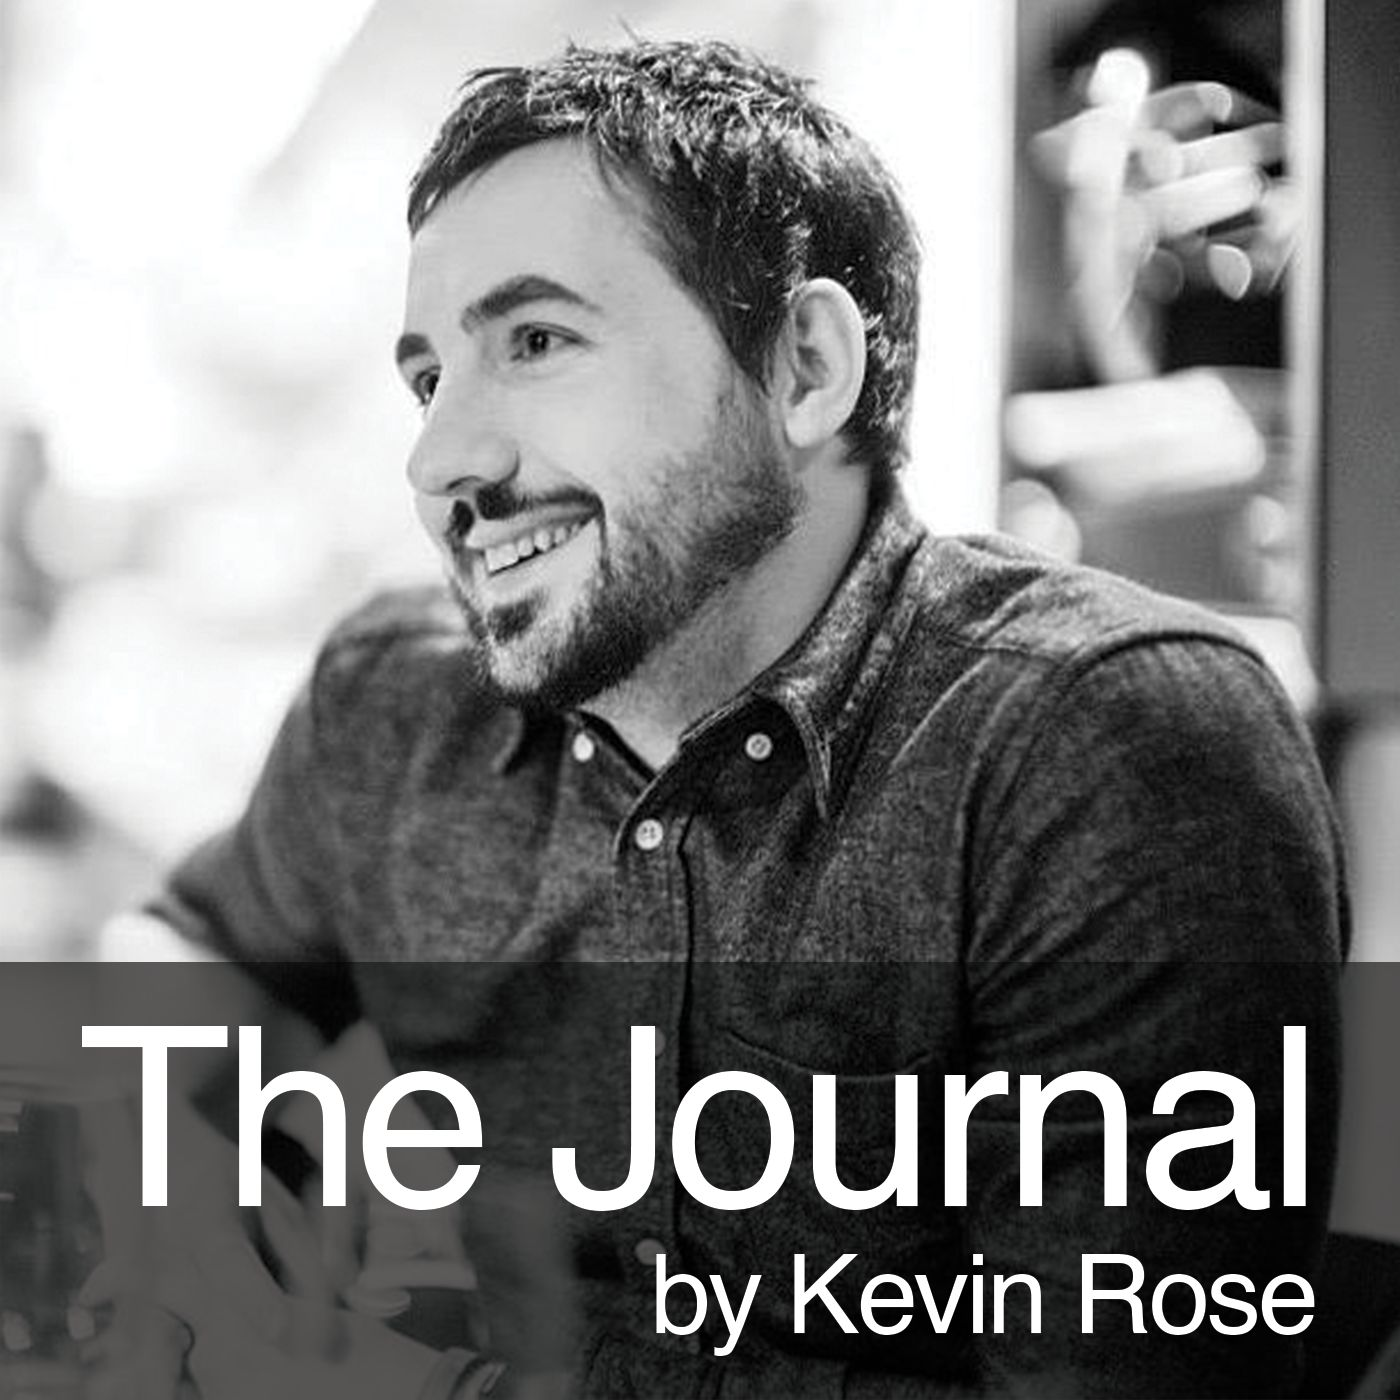 some-of-our-favorite-newsletters-guide-the-journal-kevin-rose